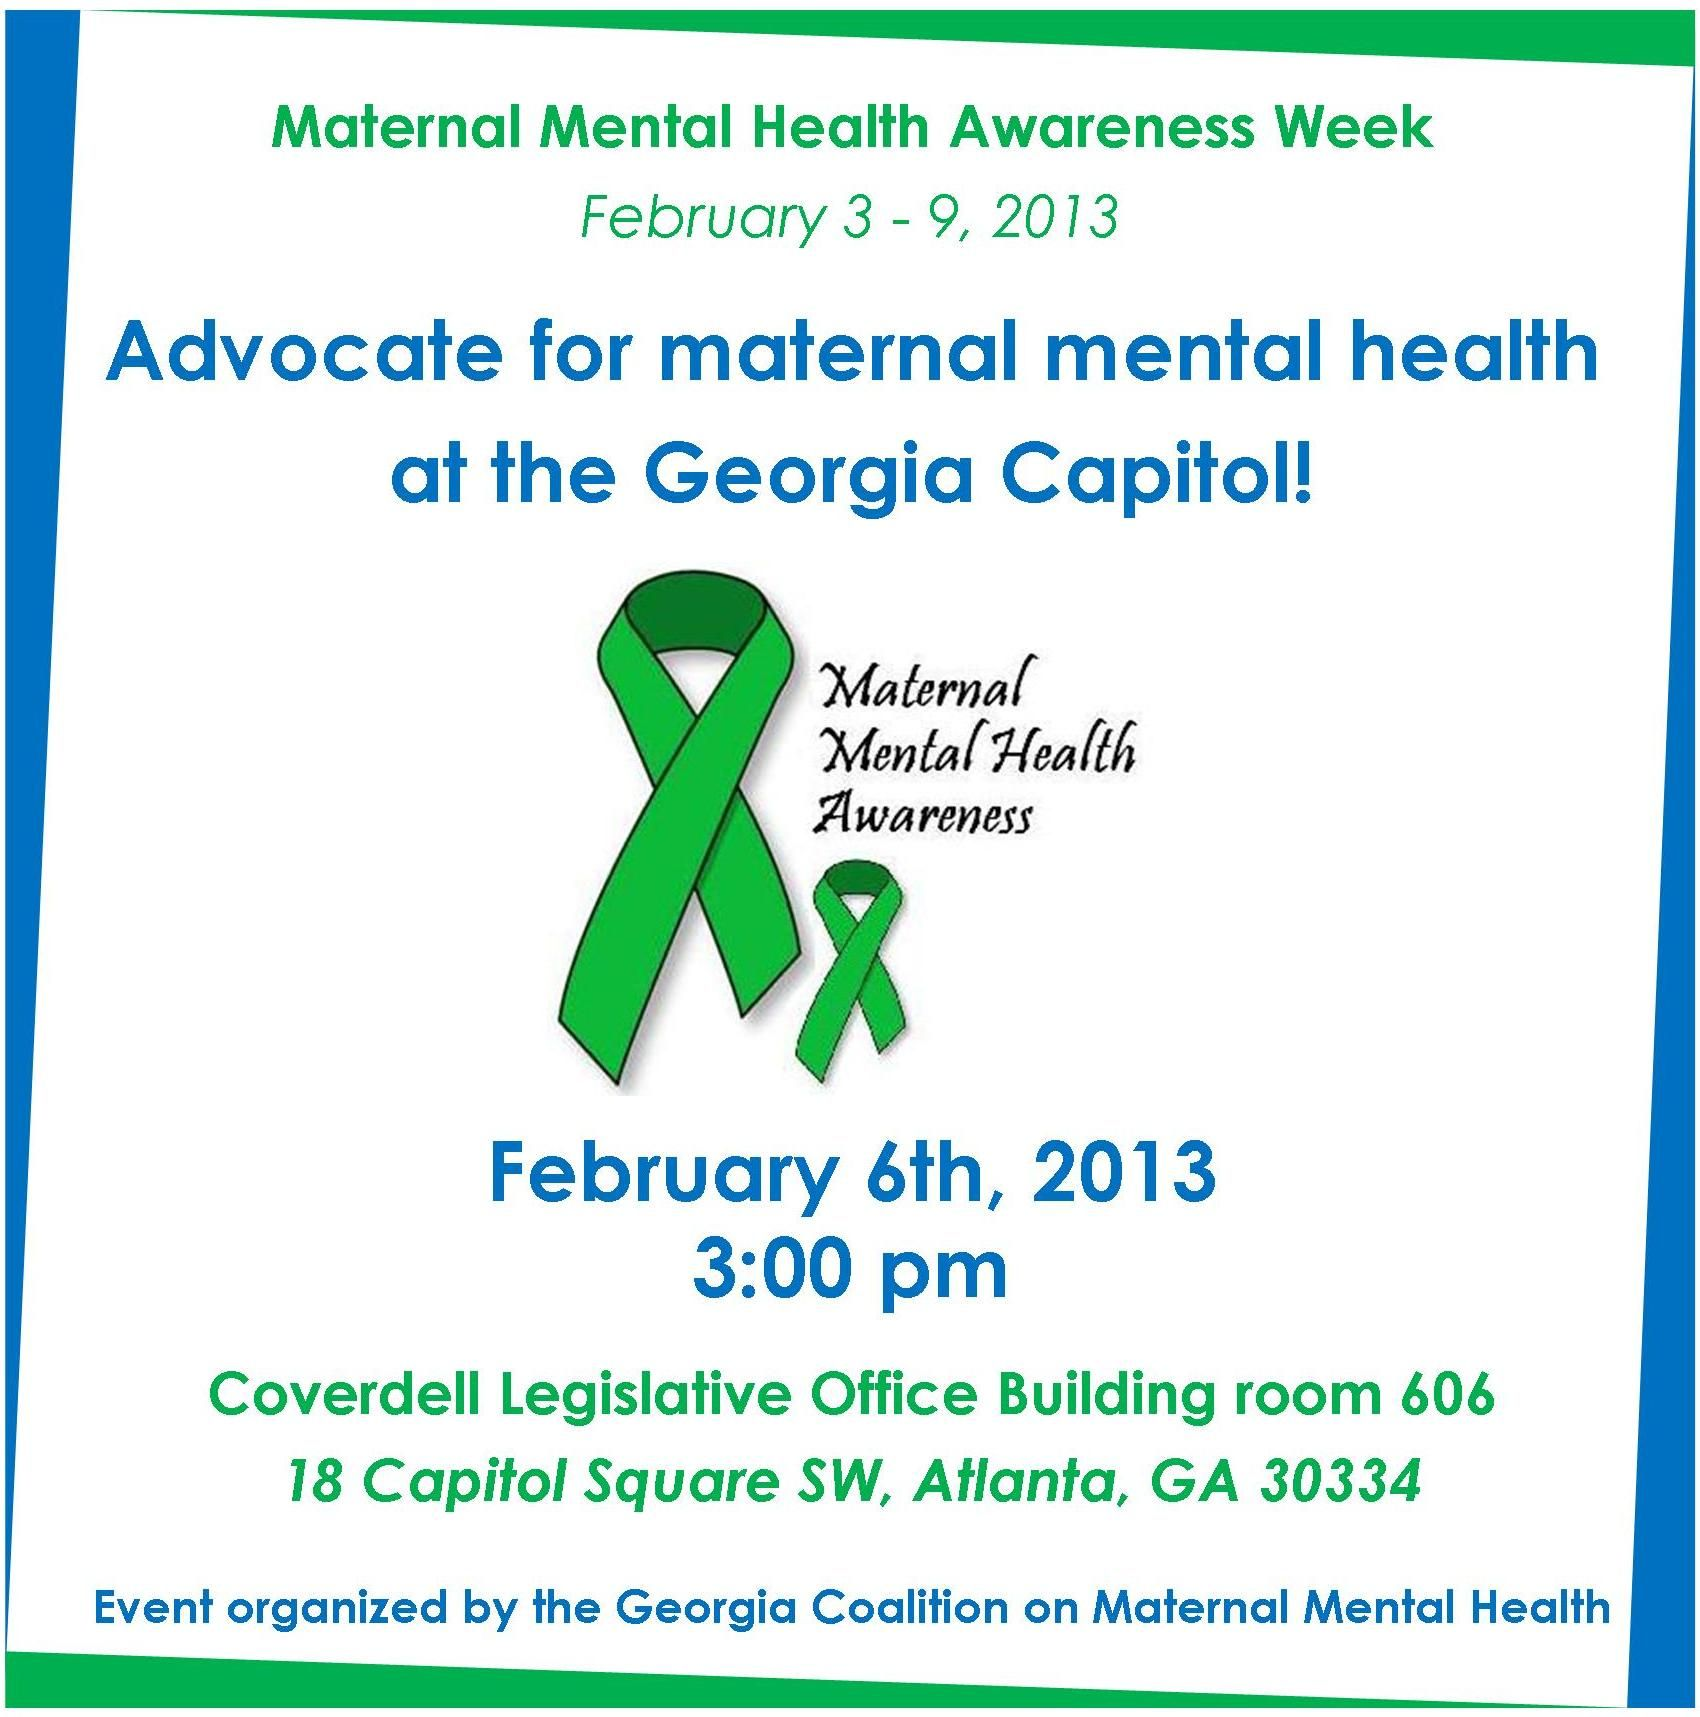 It is MATERNAL MENTAL HEALTH AWARENESS WEEK in